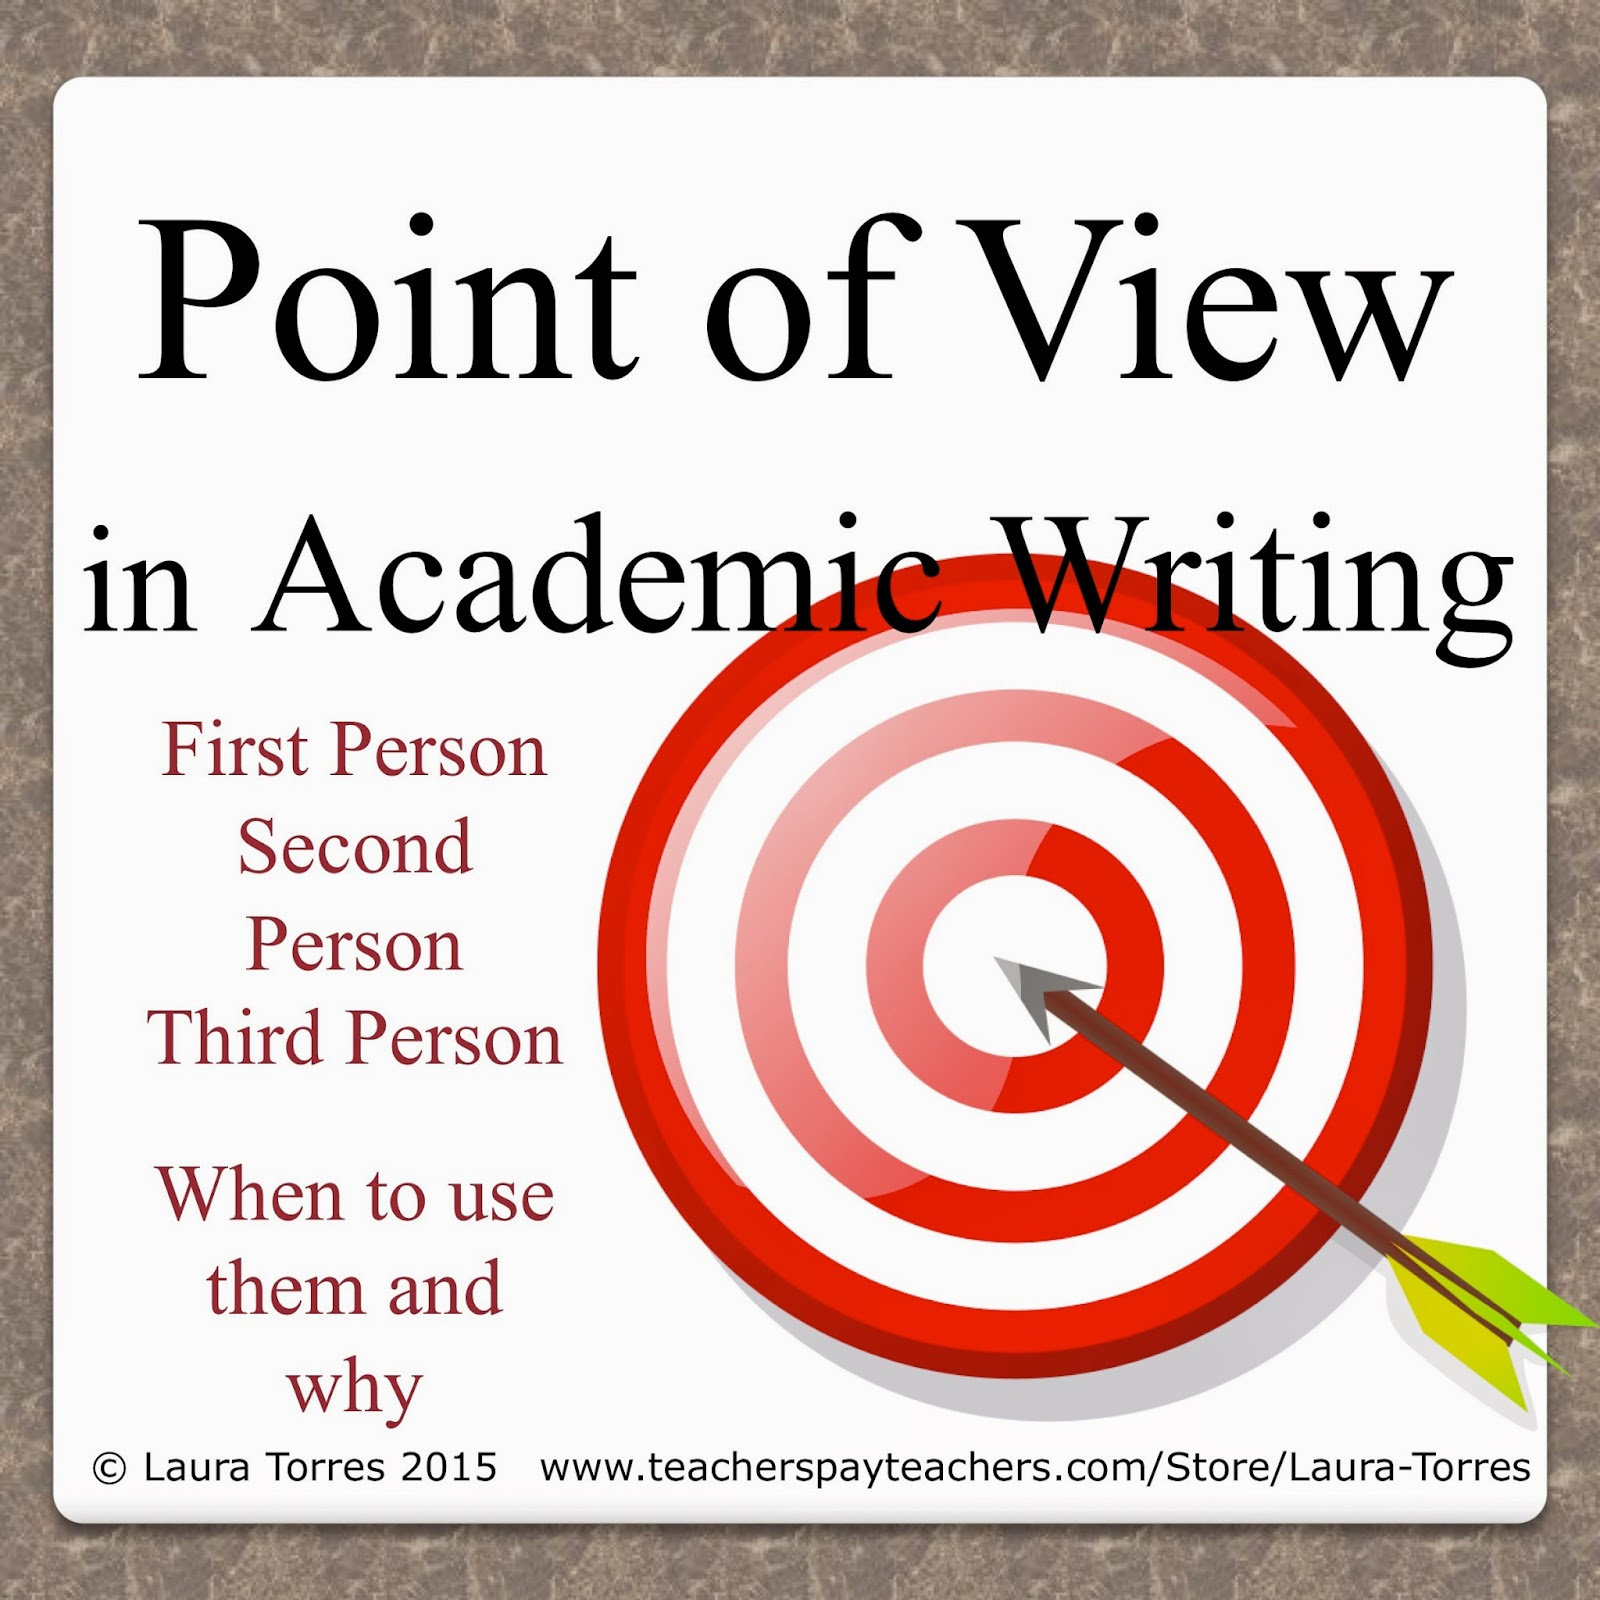 https://www.teacherspayteachers.com/Product/Point-of-View-in-Academic-Writing-1798737